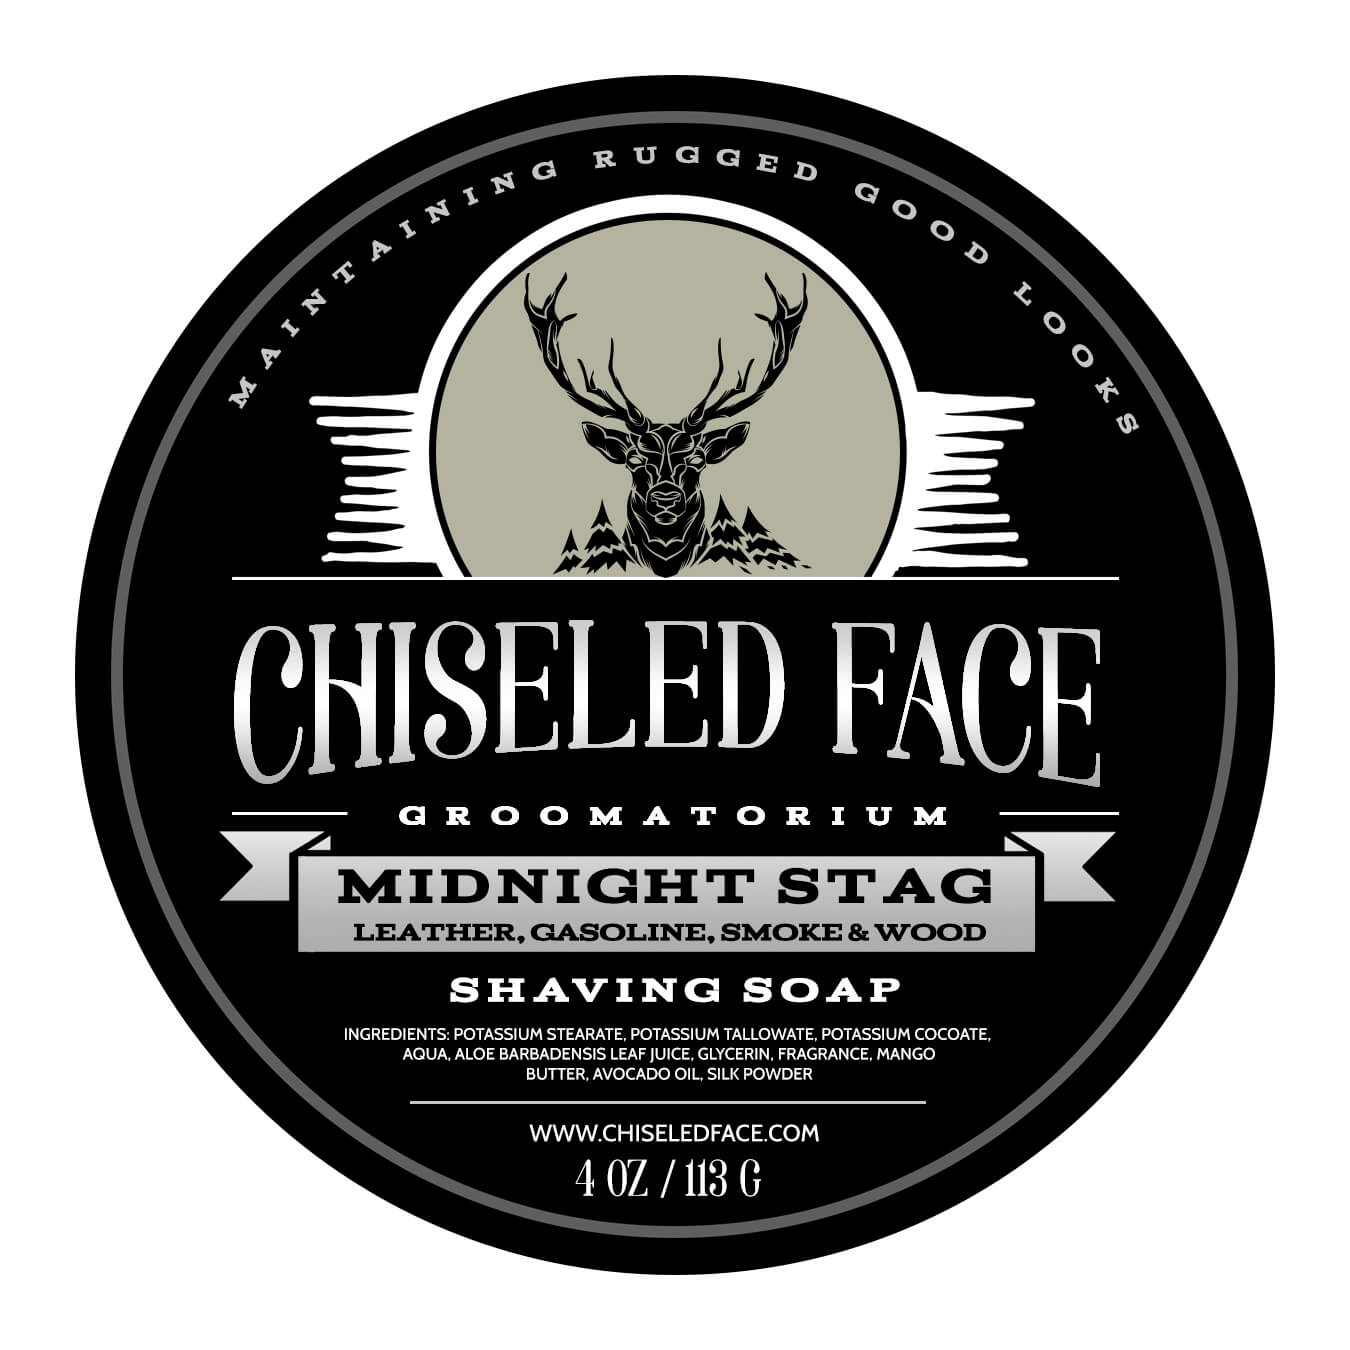 Chiseled Face - Midnight Stag - Shaving Soap Imperfect